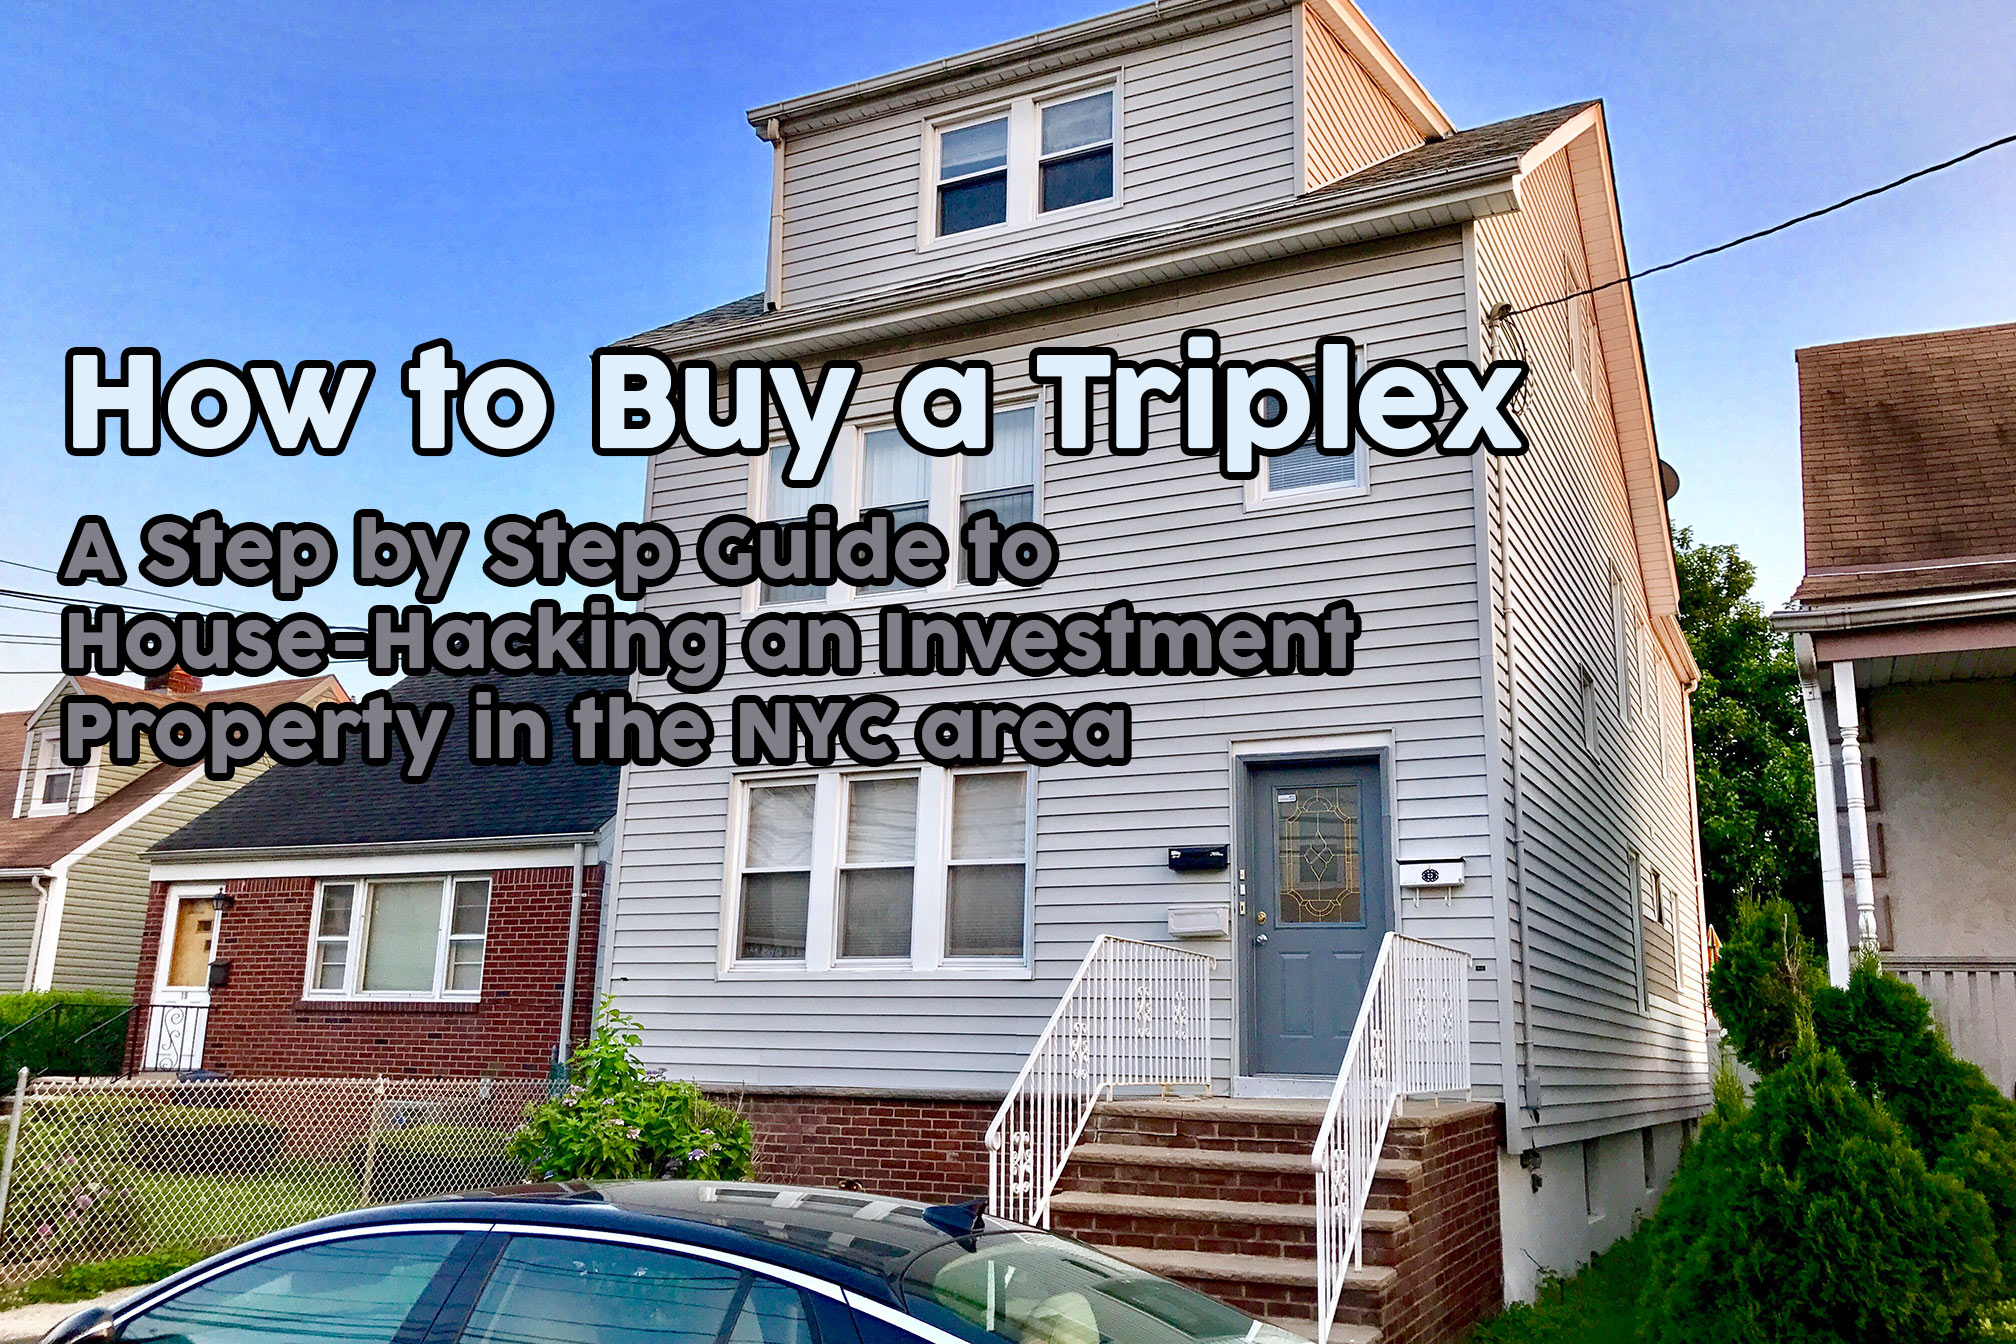 How to Buy a Triplex: A Step by Step Guide to House-Hacking an